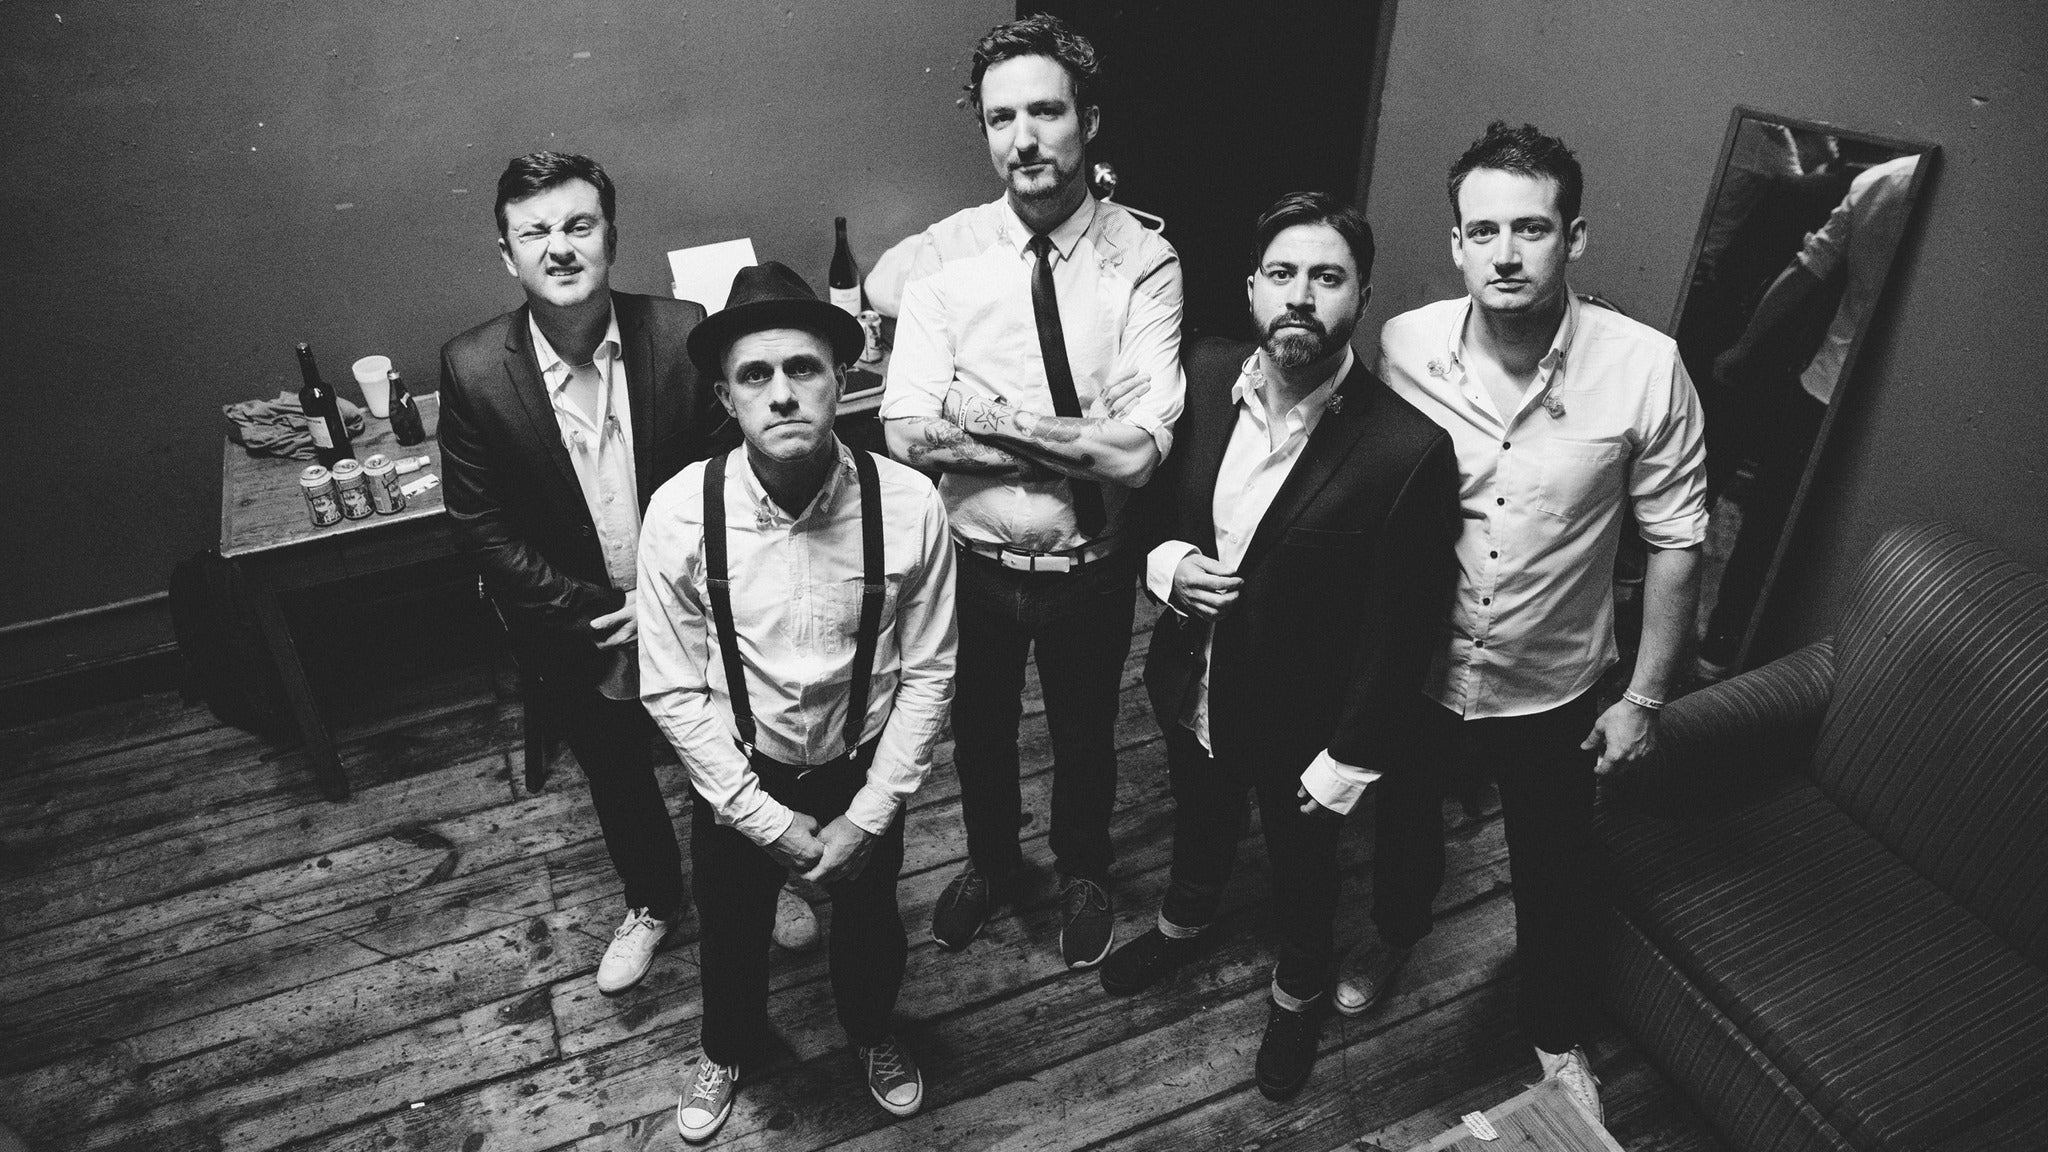 Frank Turner & The Sleeping Souls at Myth